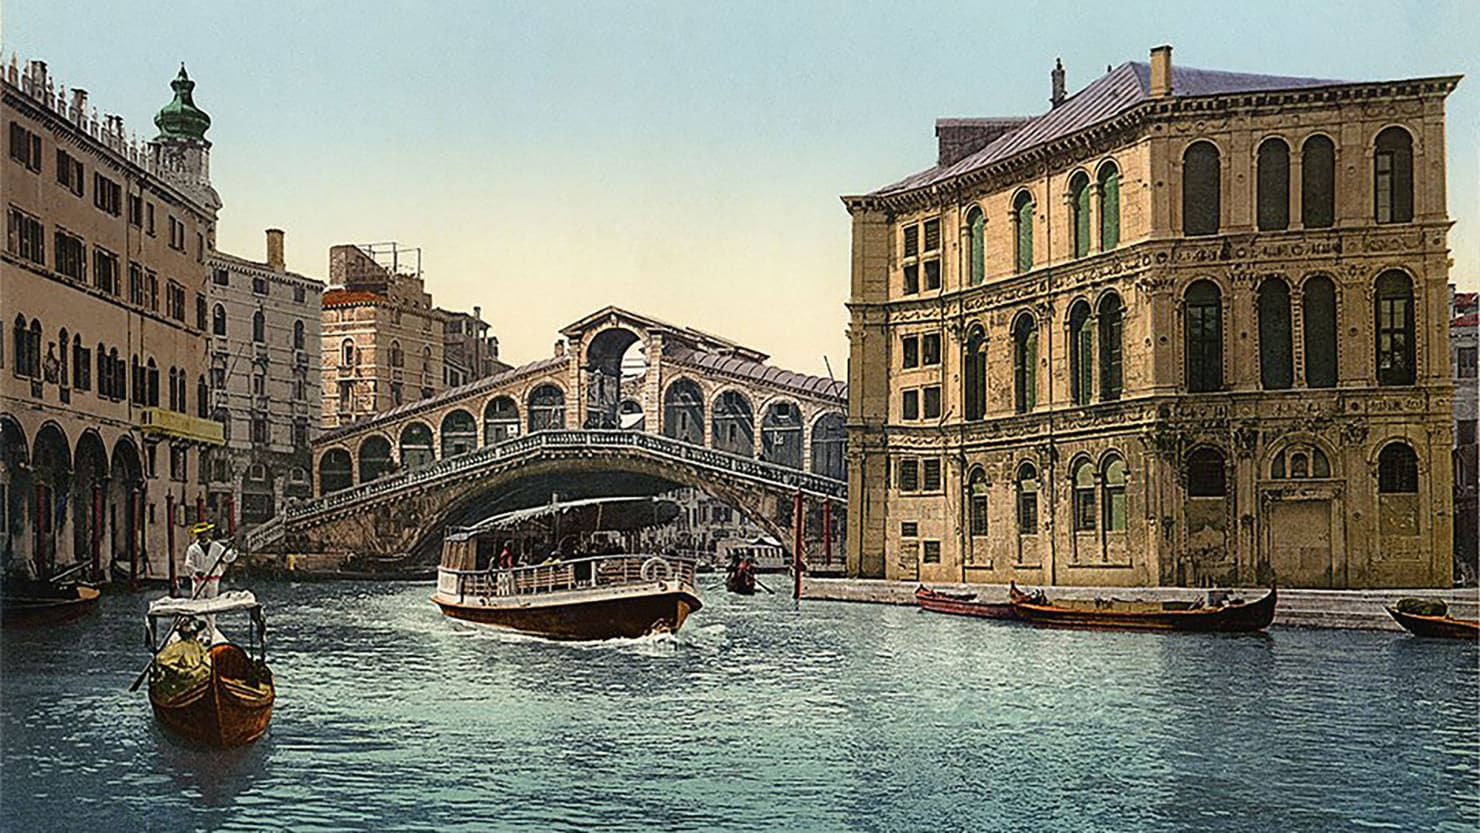 Just Booked: Travel to Turn-of-the-Century Italy